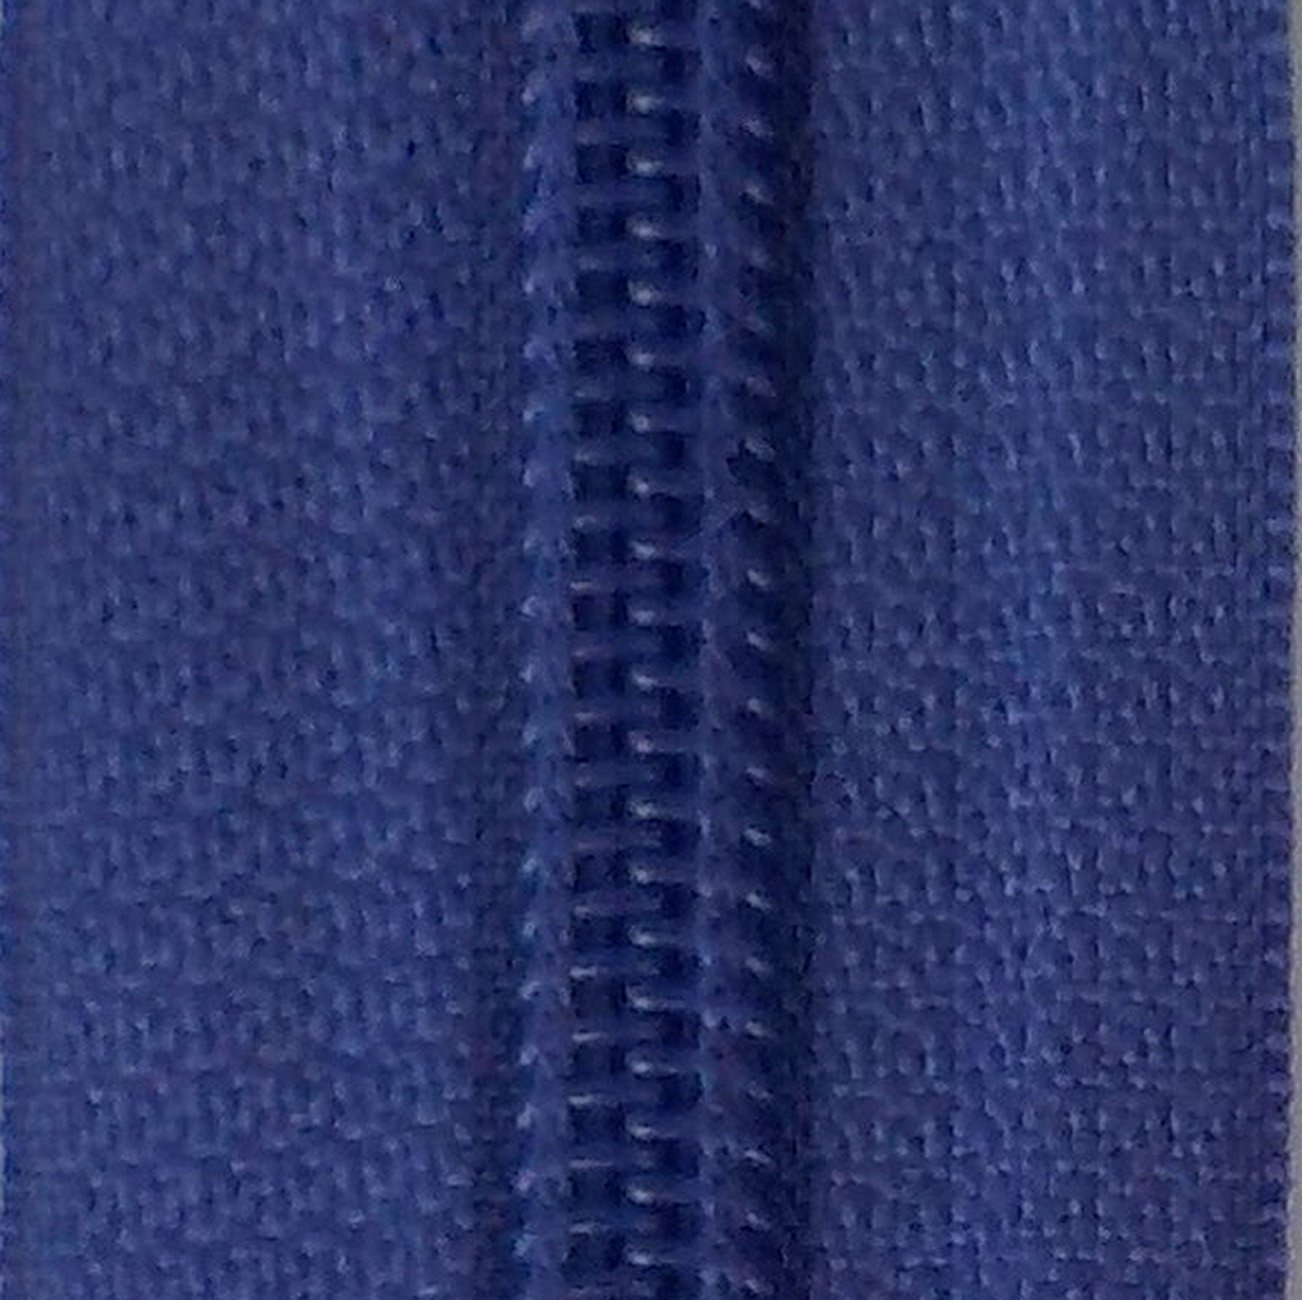 30 Double Pull Non Separating Zipper Dusted Peri